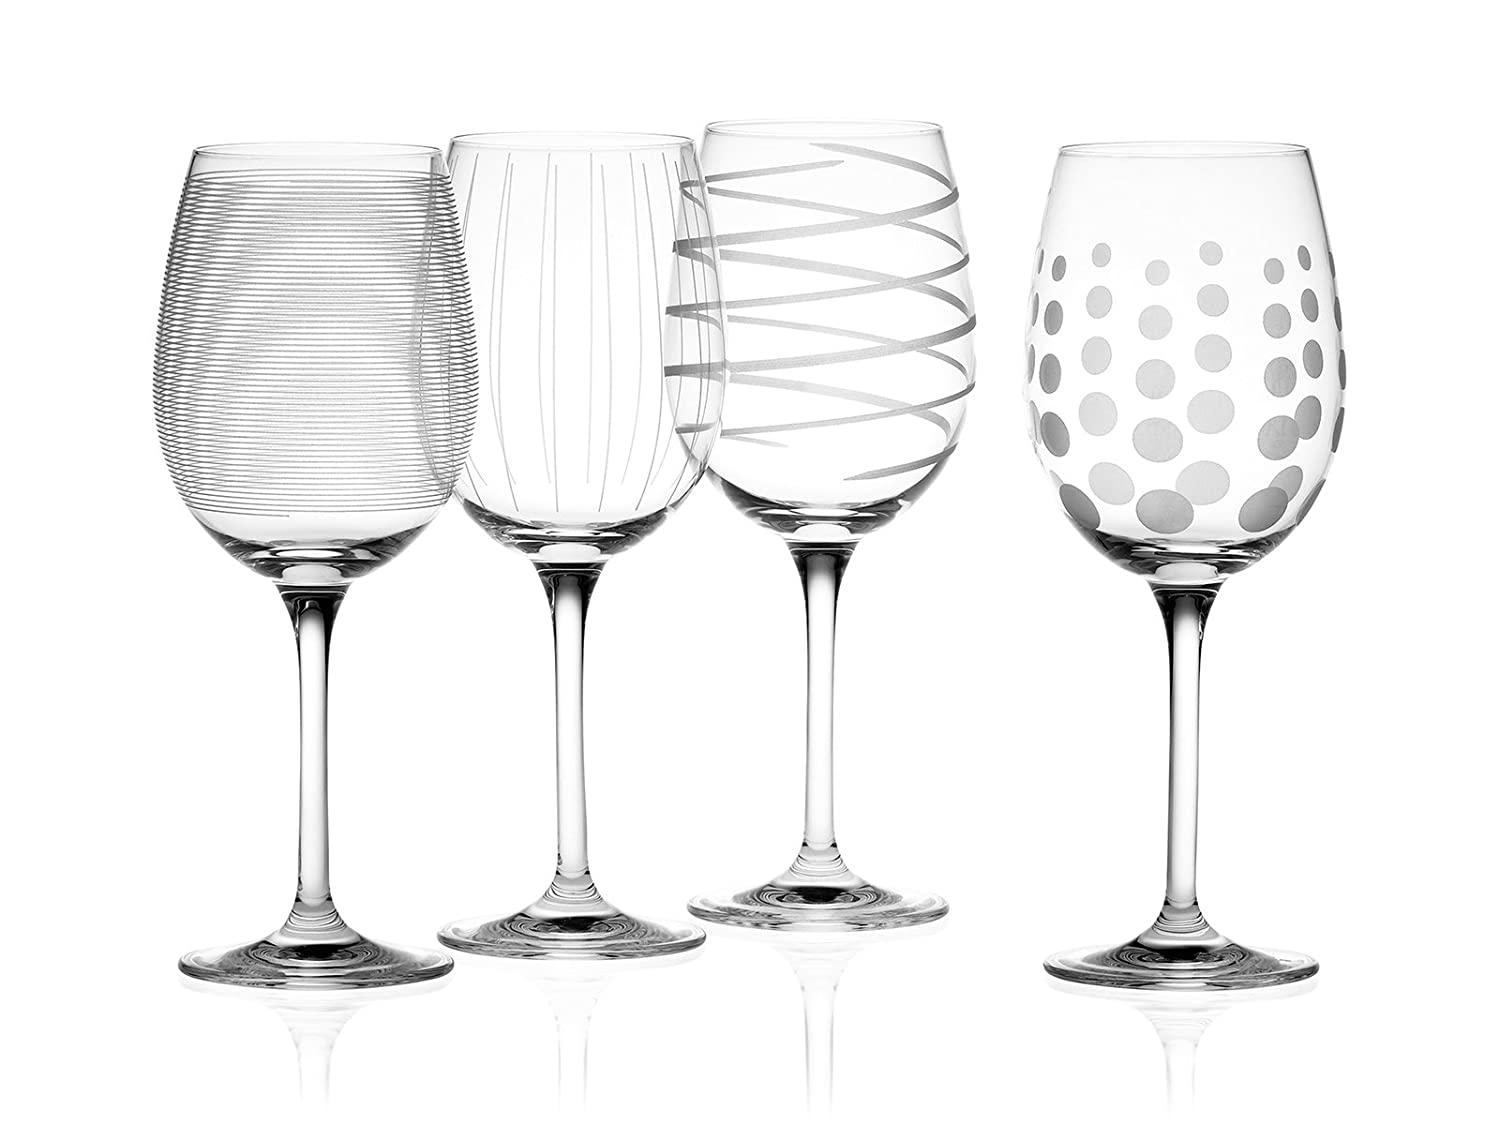 Mikasa Cheers Set of 4 Crystal White Wine Glasses, 450 ml (15 fl oz)